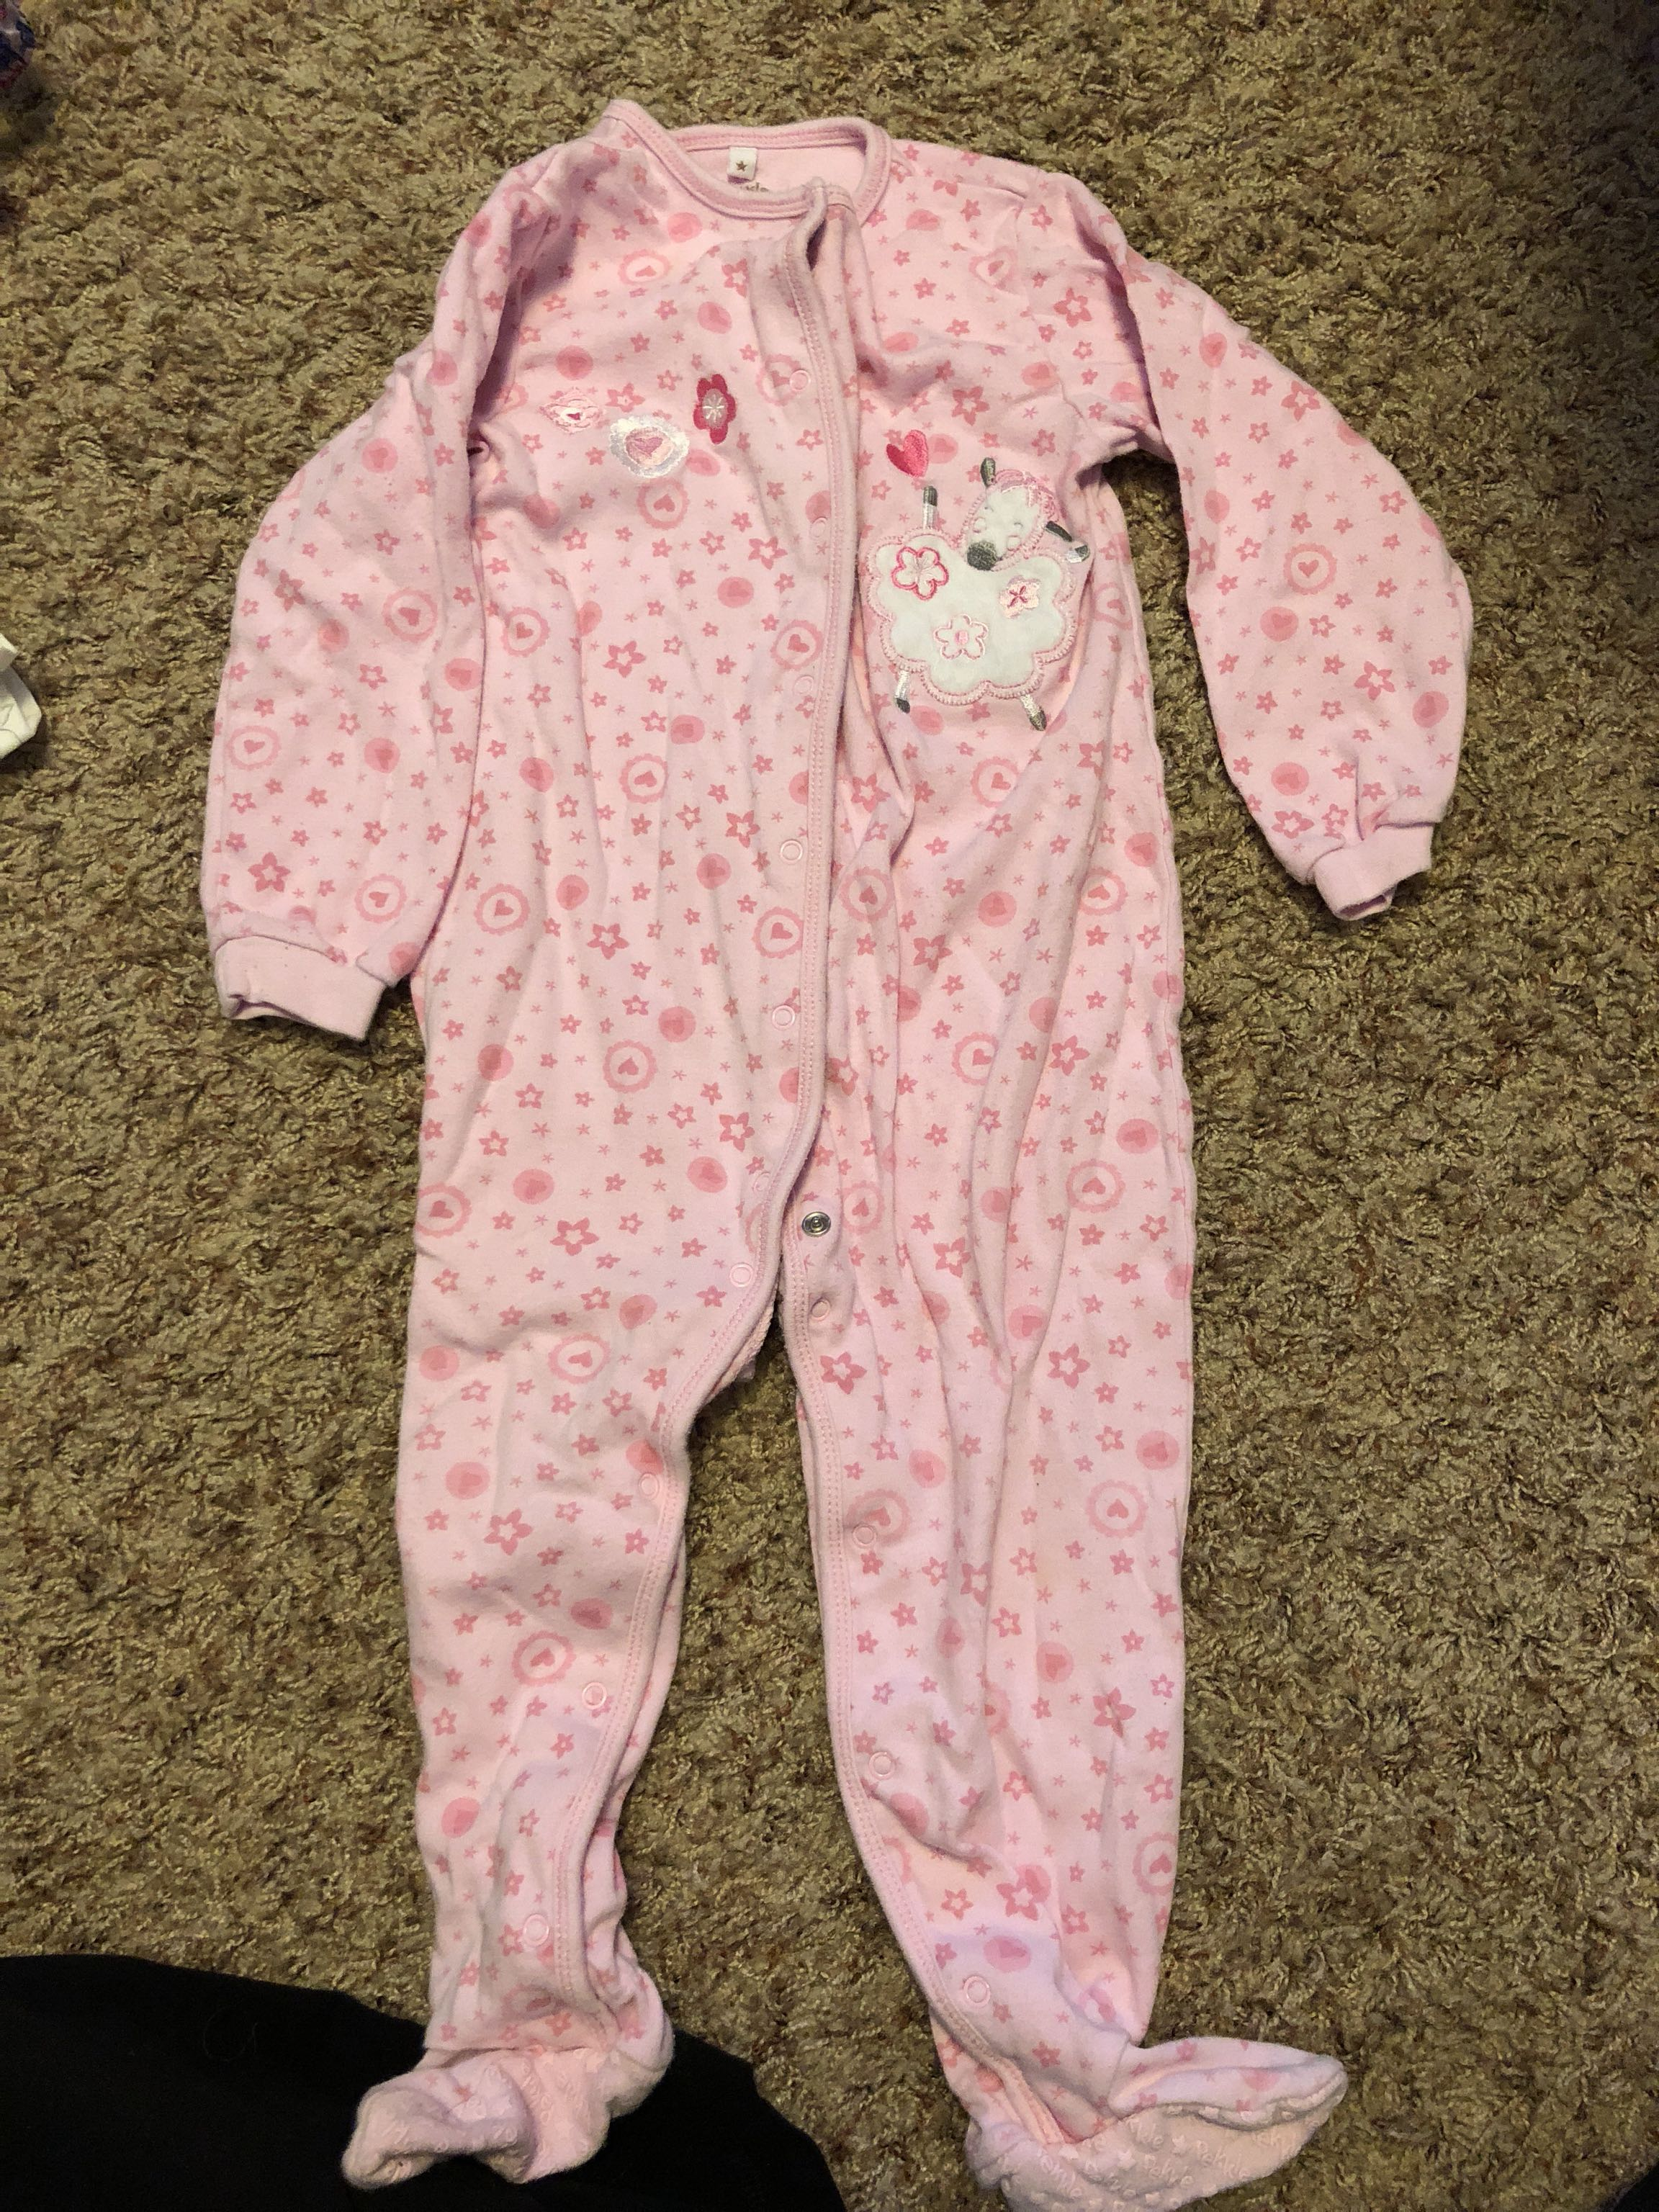 Pekkle pink snap sleeper size 24 months